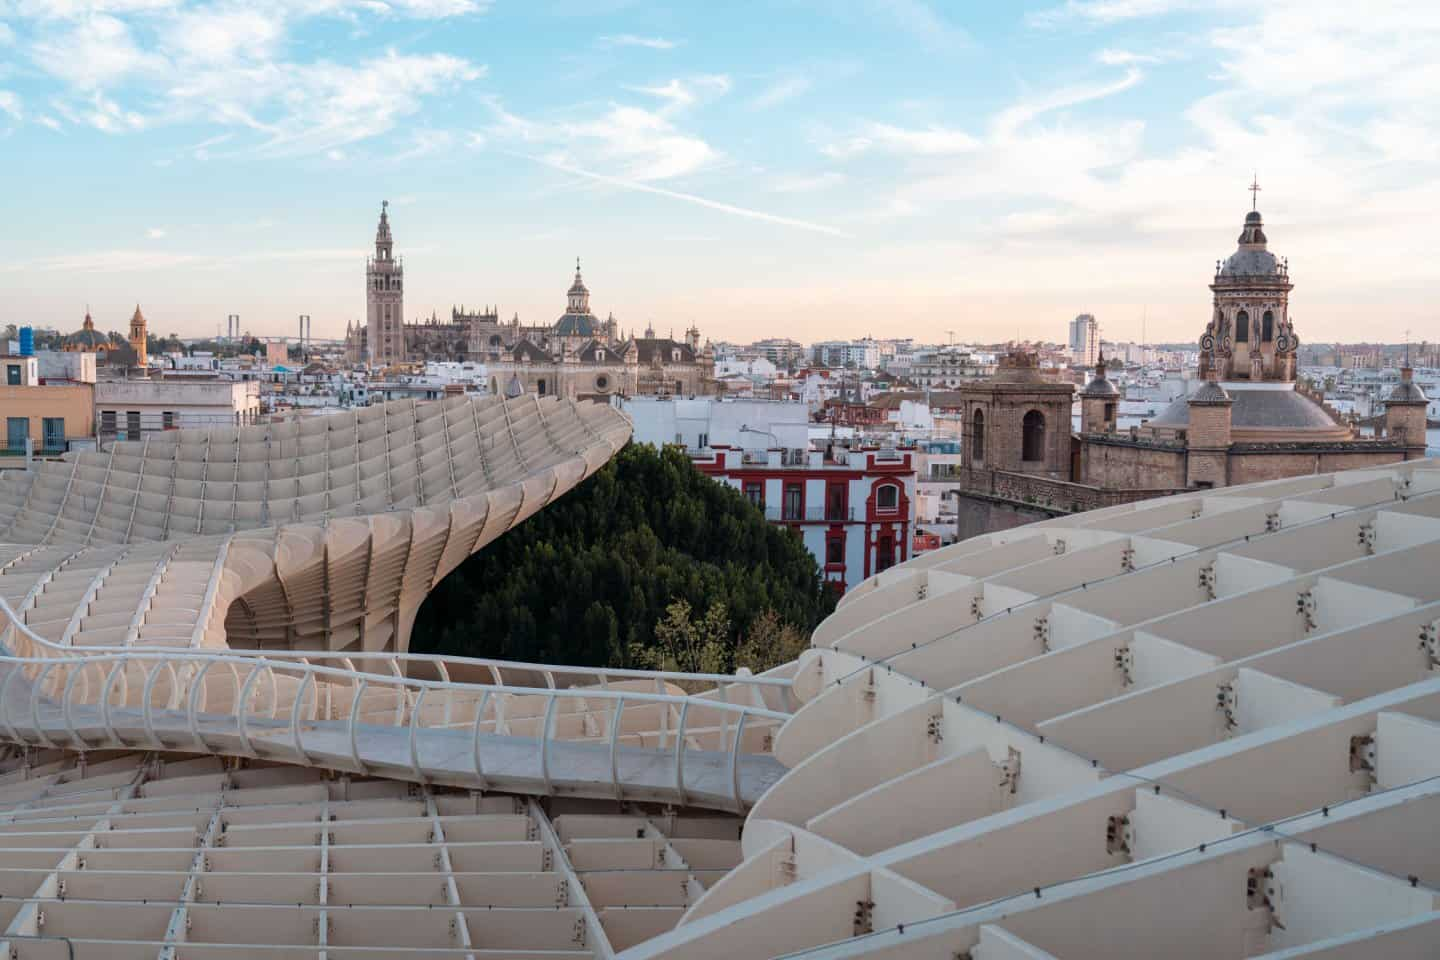 Metropol Parasol walkway with Seville Cathedral, one of the most instagrammable spots in Seville